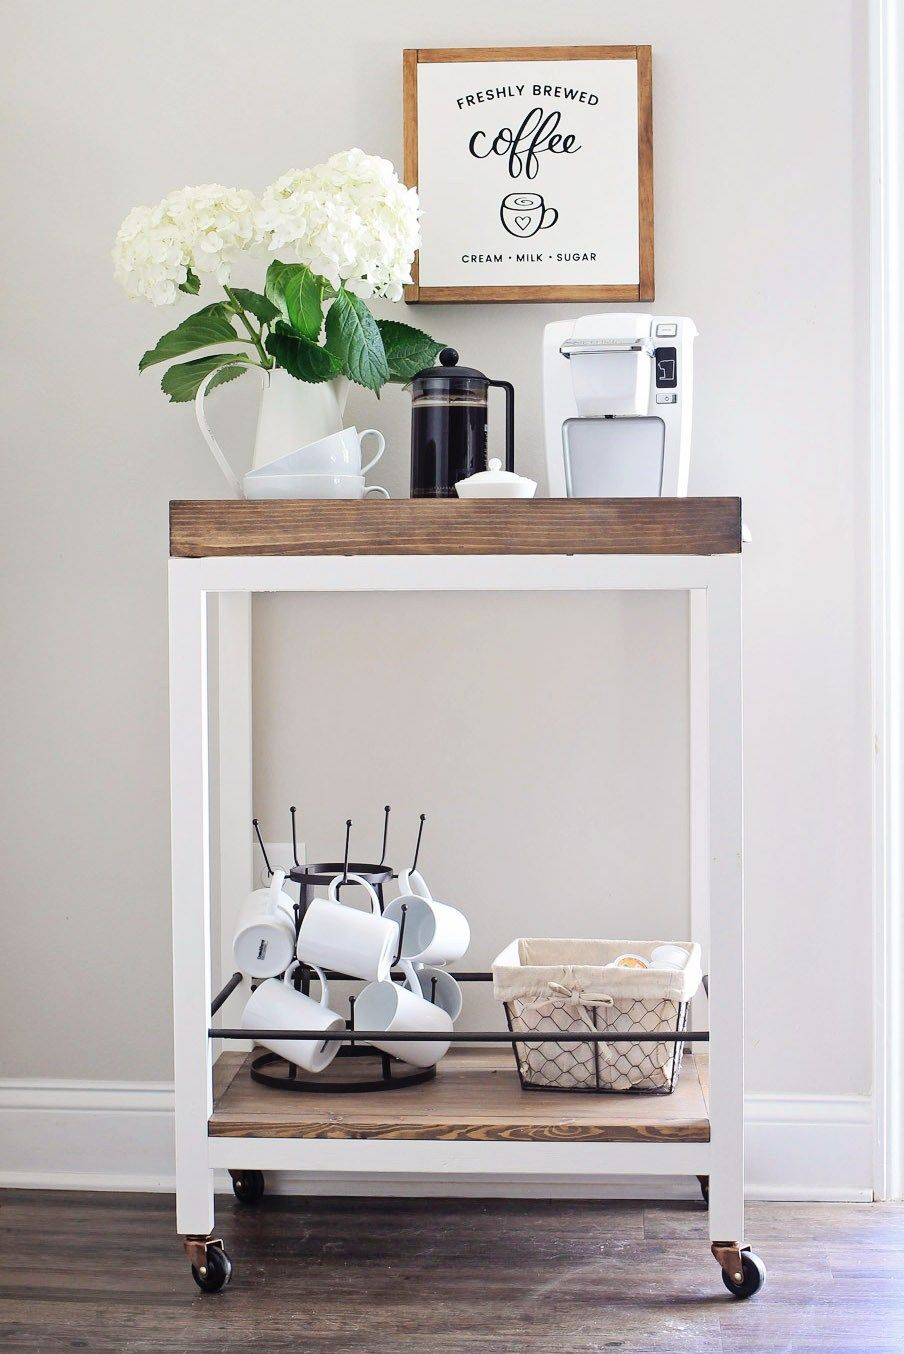 DIY Coffee Bar Made With Carts For Wishing A Warm Welcome